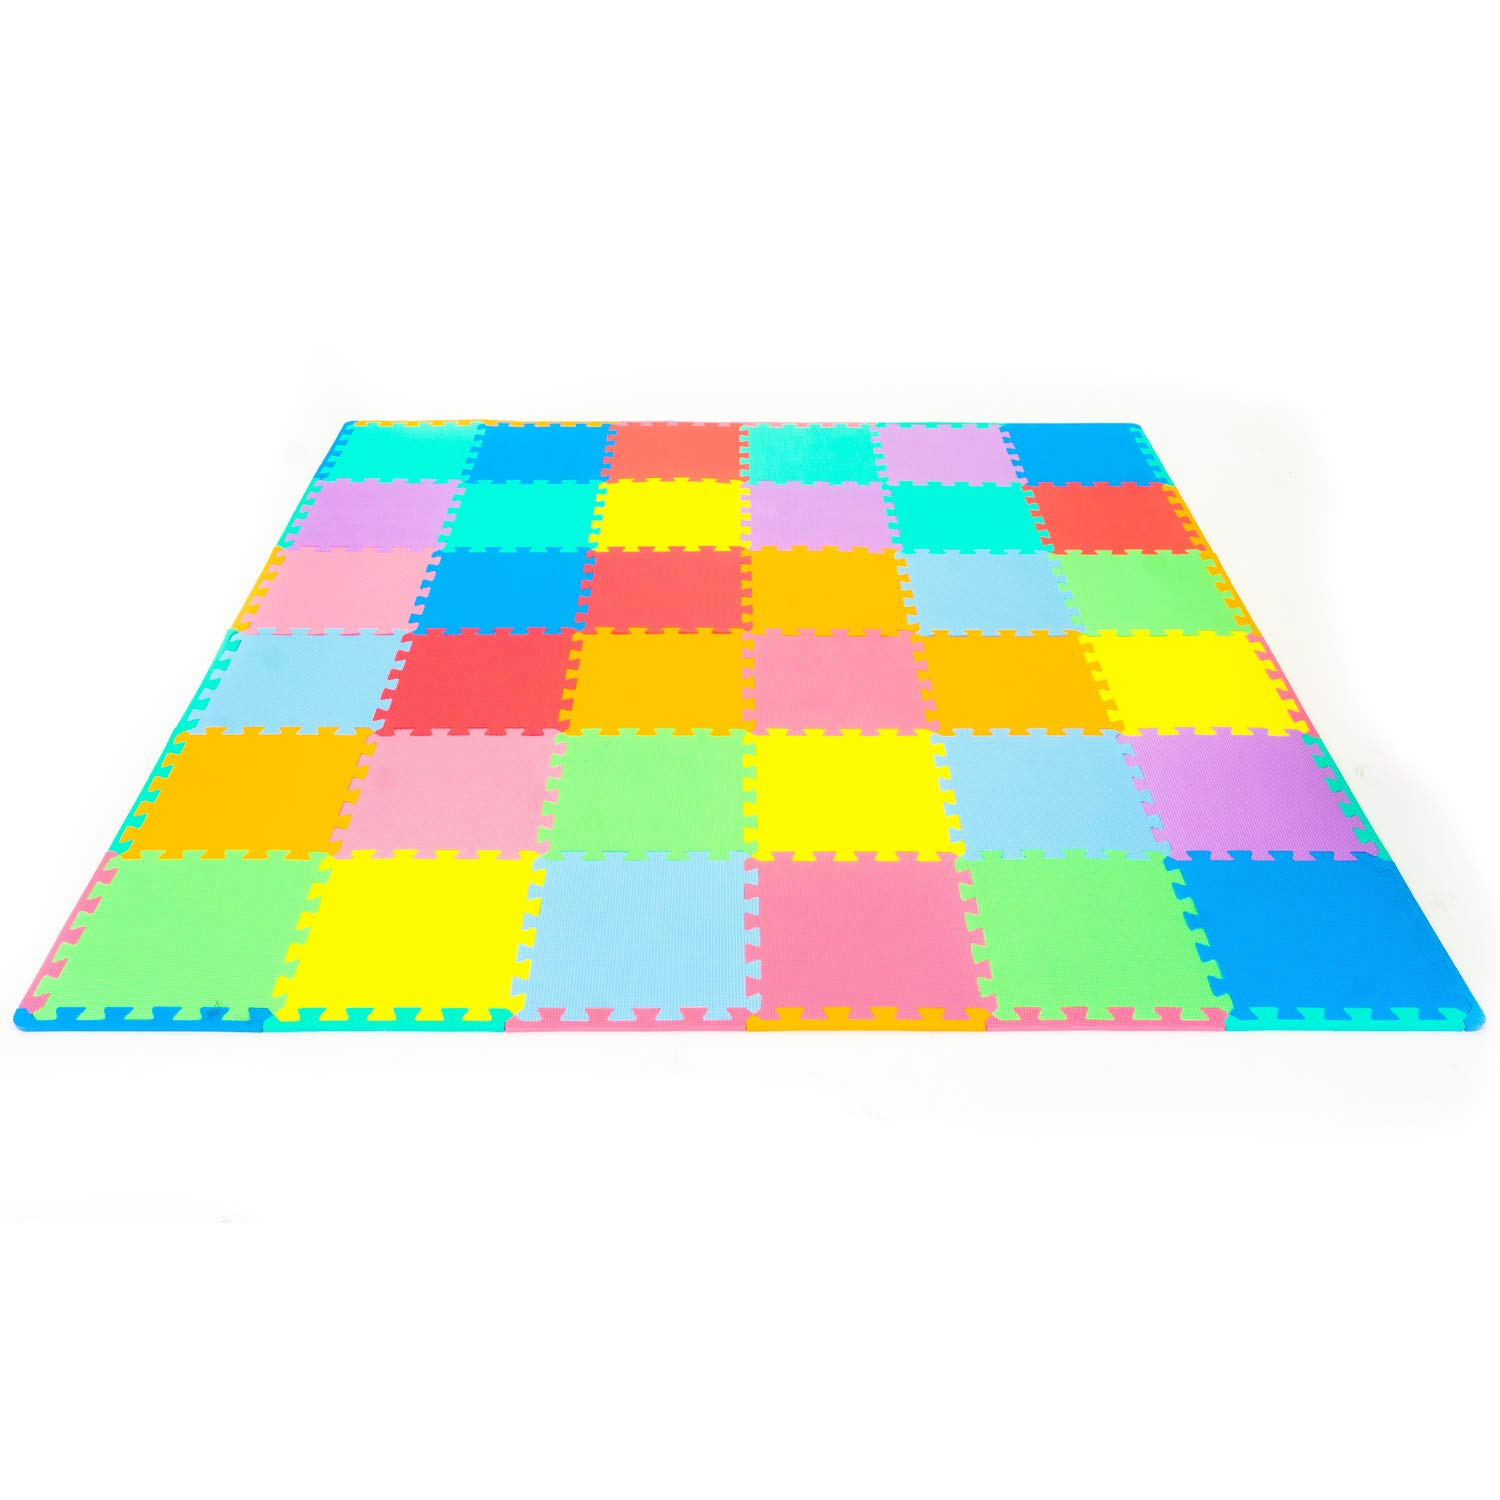 1bc60c0a ProSource Puzzle Solid Foam Play Mat for Kids - 36 or 16 tiles with edges  product